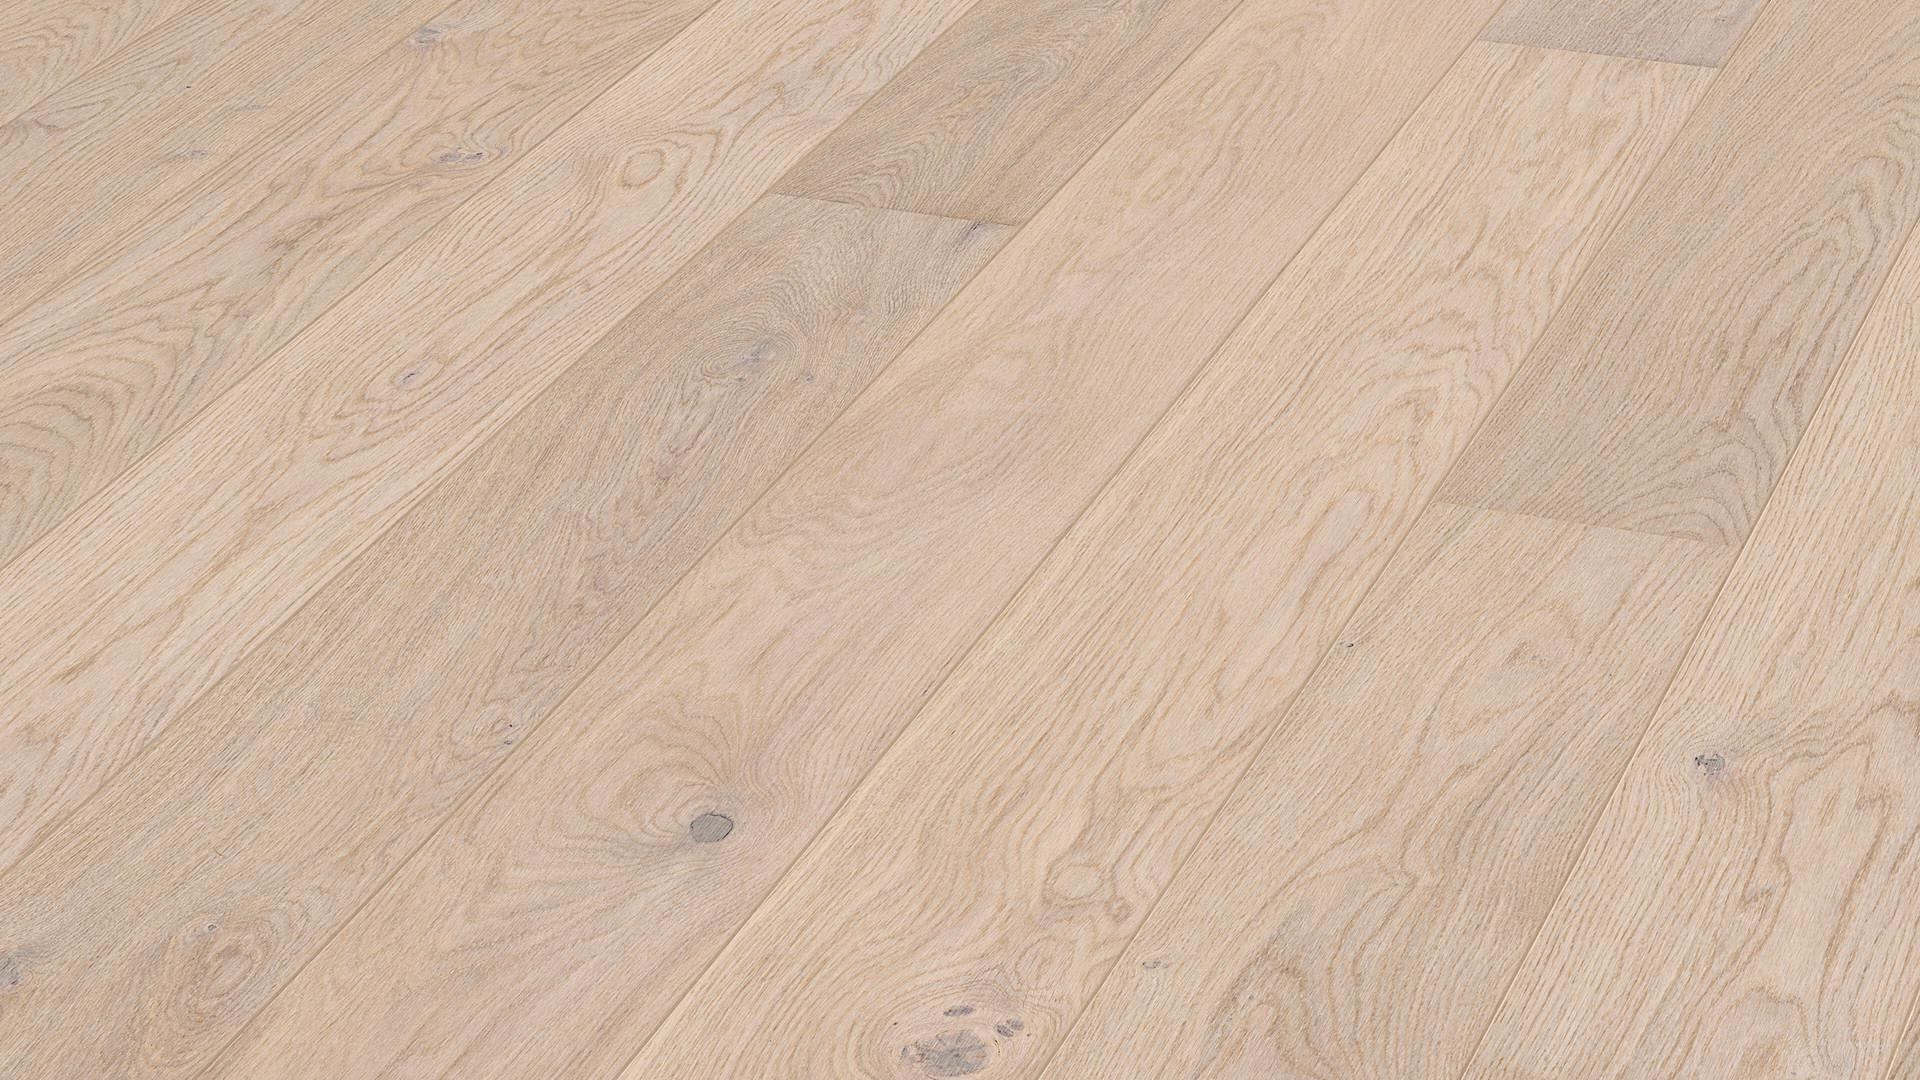 Parquet flooring MeisterParquet. longlife PD 400 Pearl oak lively 8544